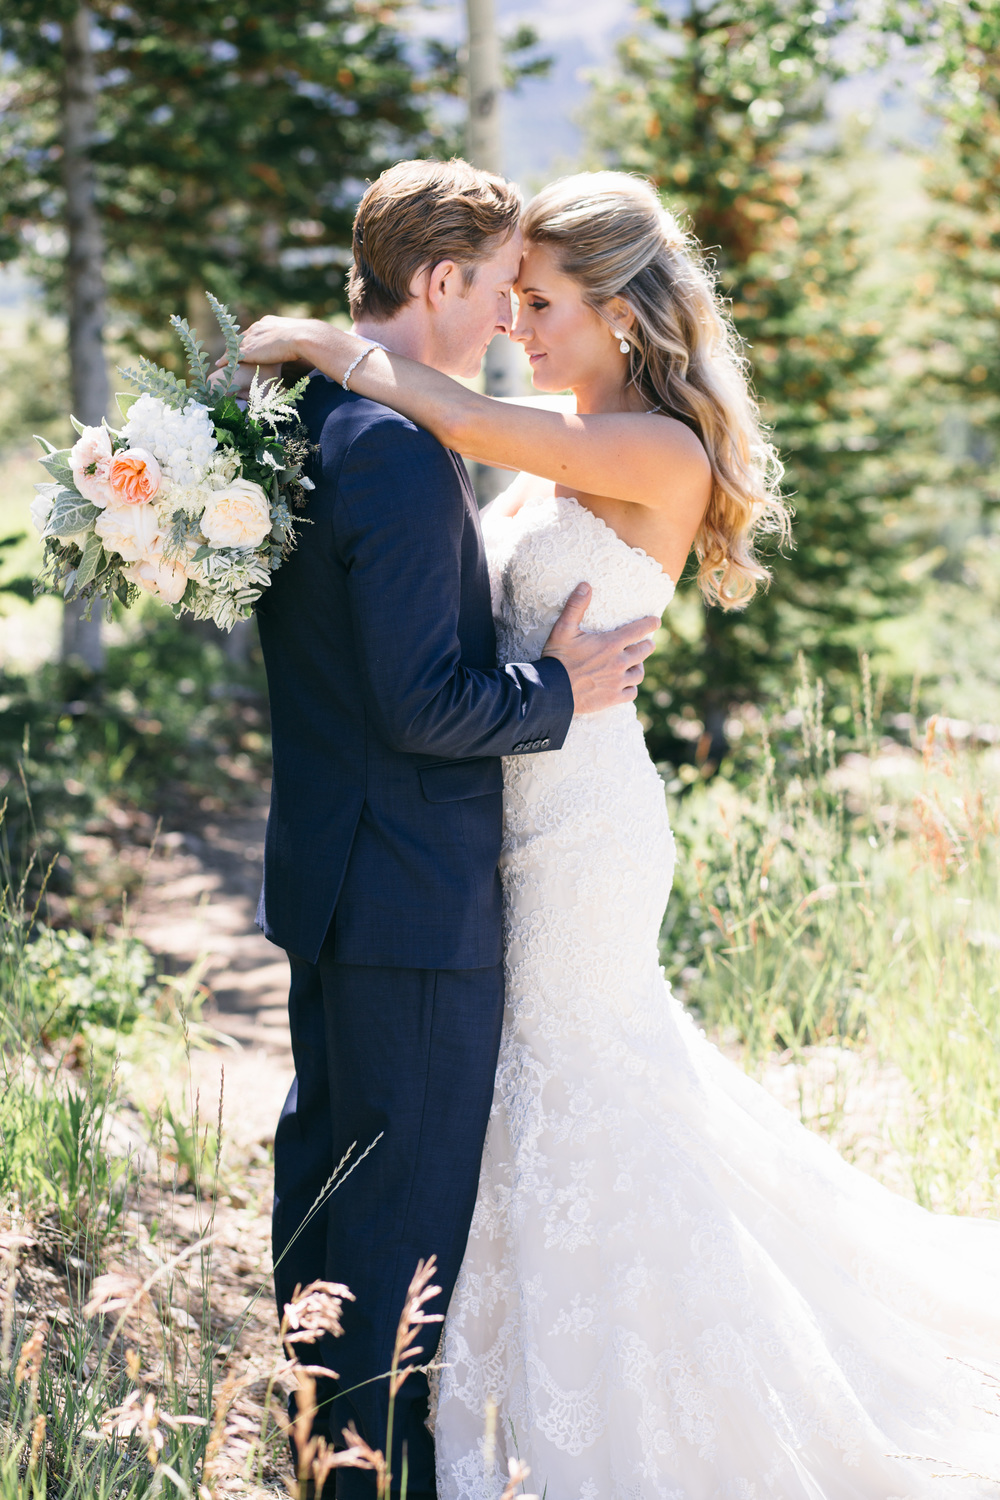 Wedding at Montage Deer Valley | Michelle Leo Events | Shannon Elizabeth Photography | Utah Wedding Design and Planning